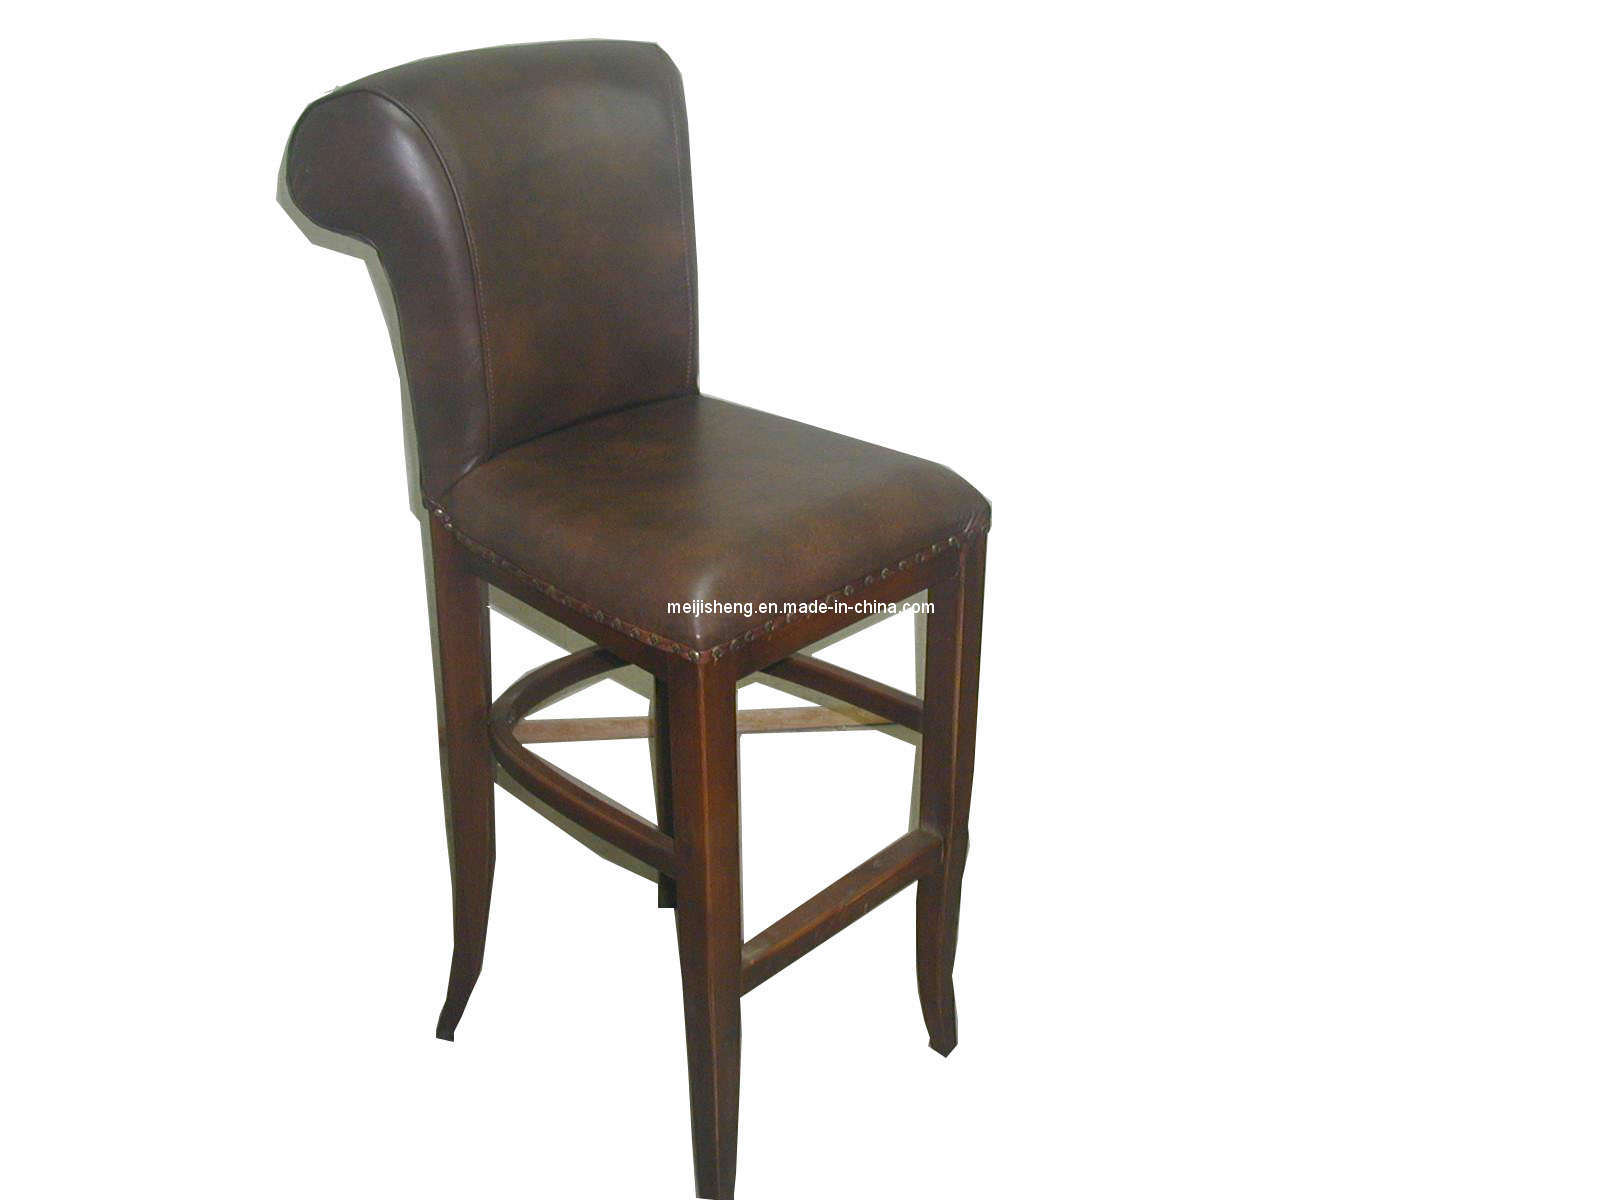 solid wooden chair with leather cushion mjs d02 china